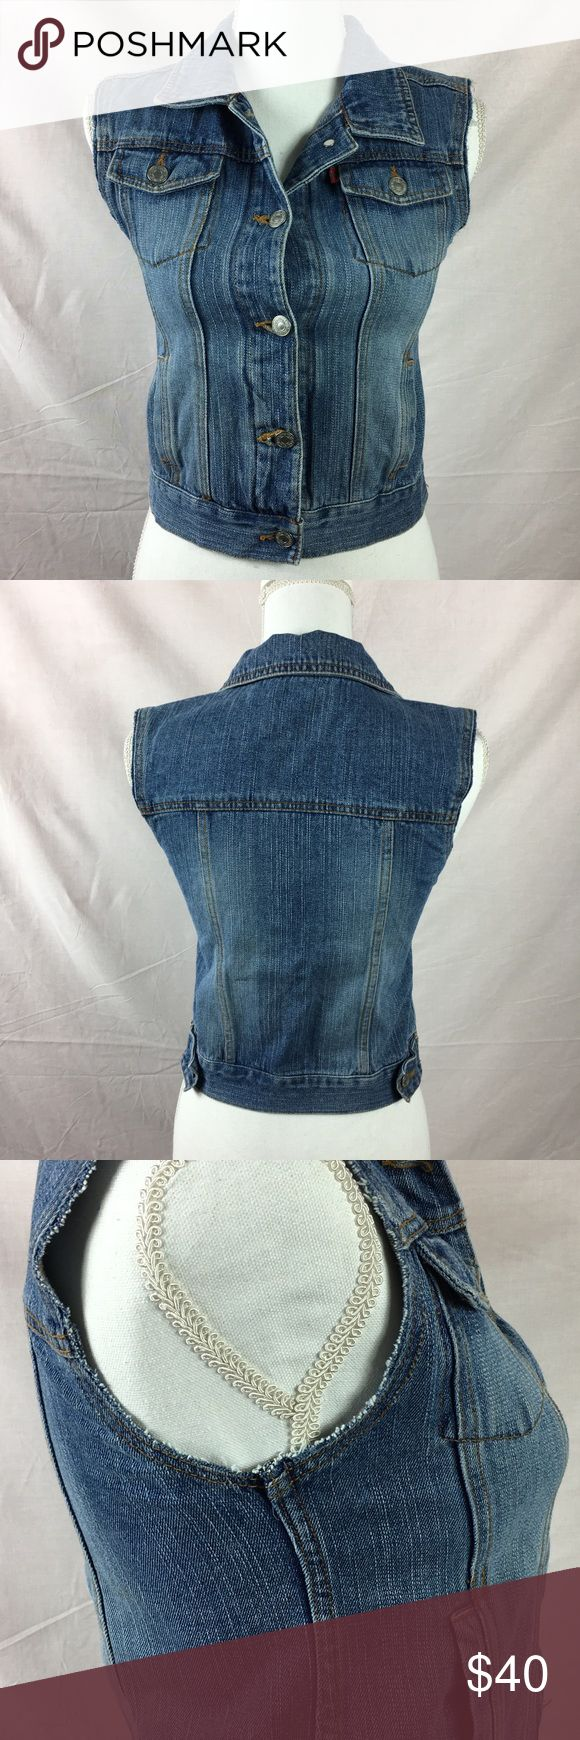 """Levis Denim Blue Jean vest cut off sleeves Levi's Denim Blue Jean vest with cut off sleeves. In great condition. 16"""" from armpit to armpit. 18"""" from top of Shoulder to bottom of vest. Levis Jackets & Coats Vests"""